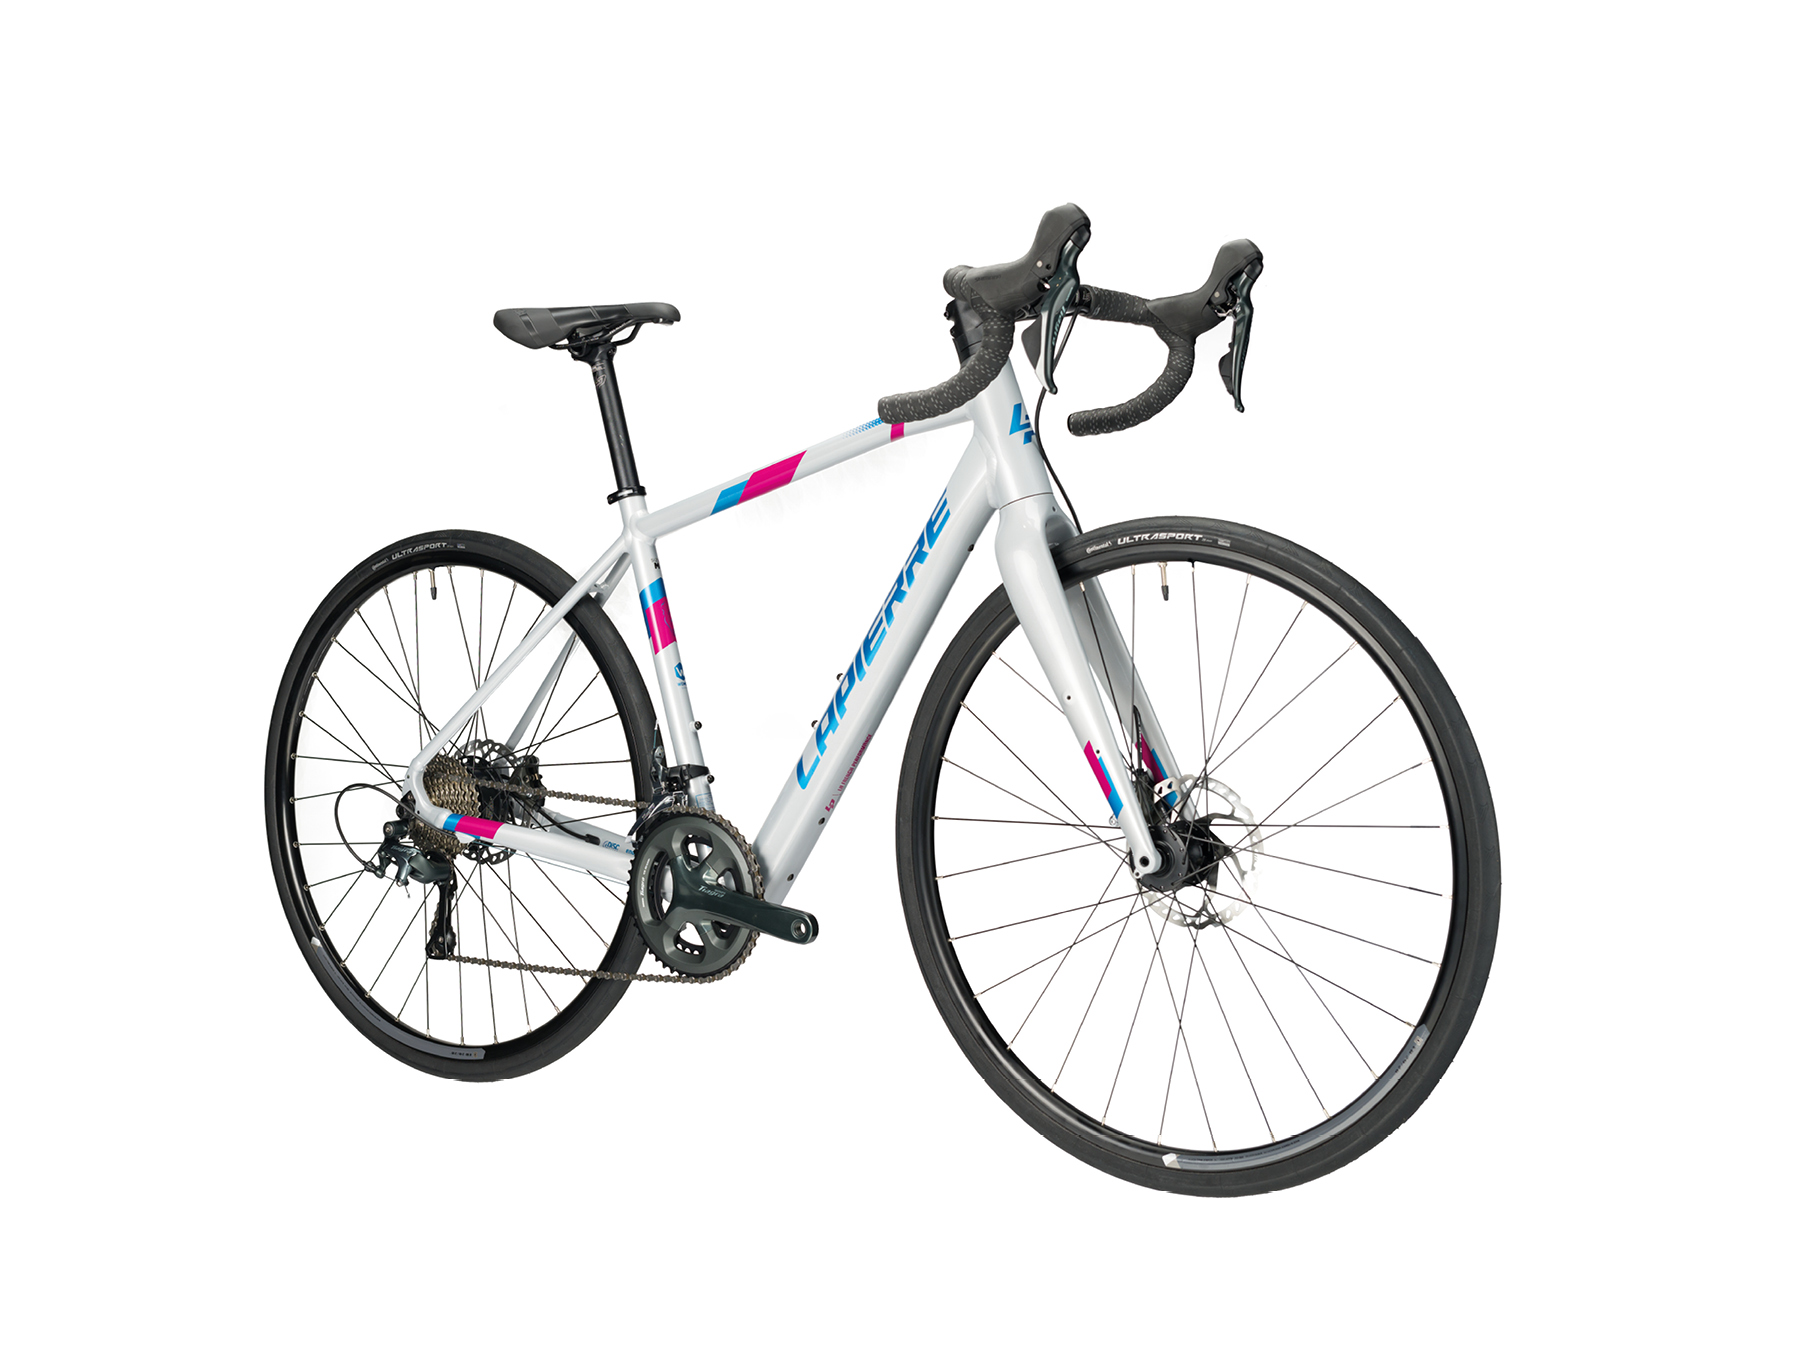 Lapierrre eSensium AL 300 2020 Womens Road Bike with Electric Assist